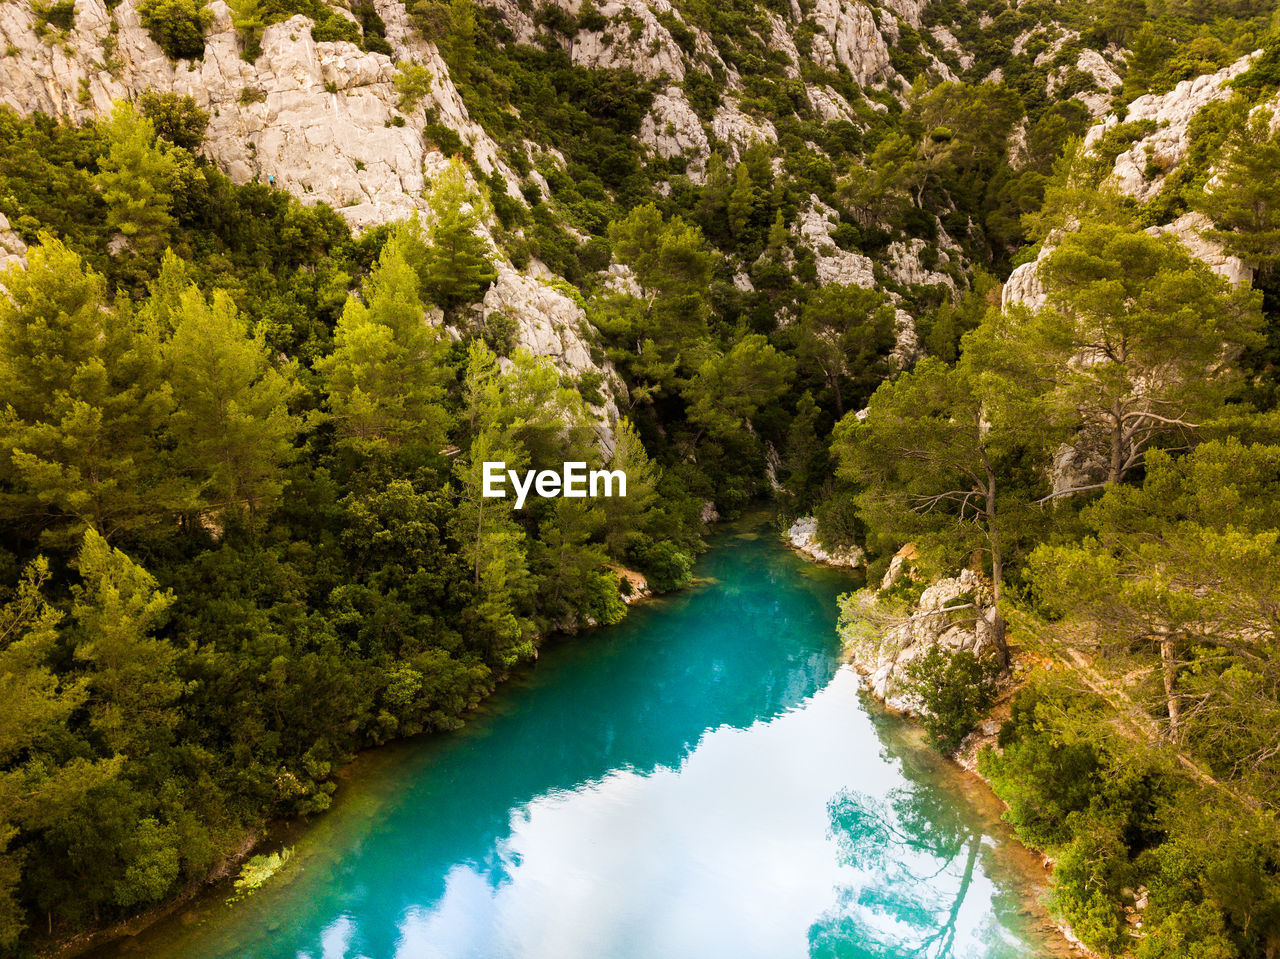 water, tree, scenics - nature, beauty in nature, plant, tranquil scene, tranquility, nature, day, no people, high angle view, green color, land, non-urban scene, forest, idyllic, river, growth, outdoors, turquoise colored, flowing